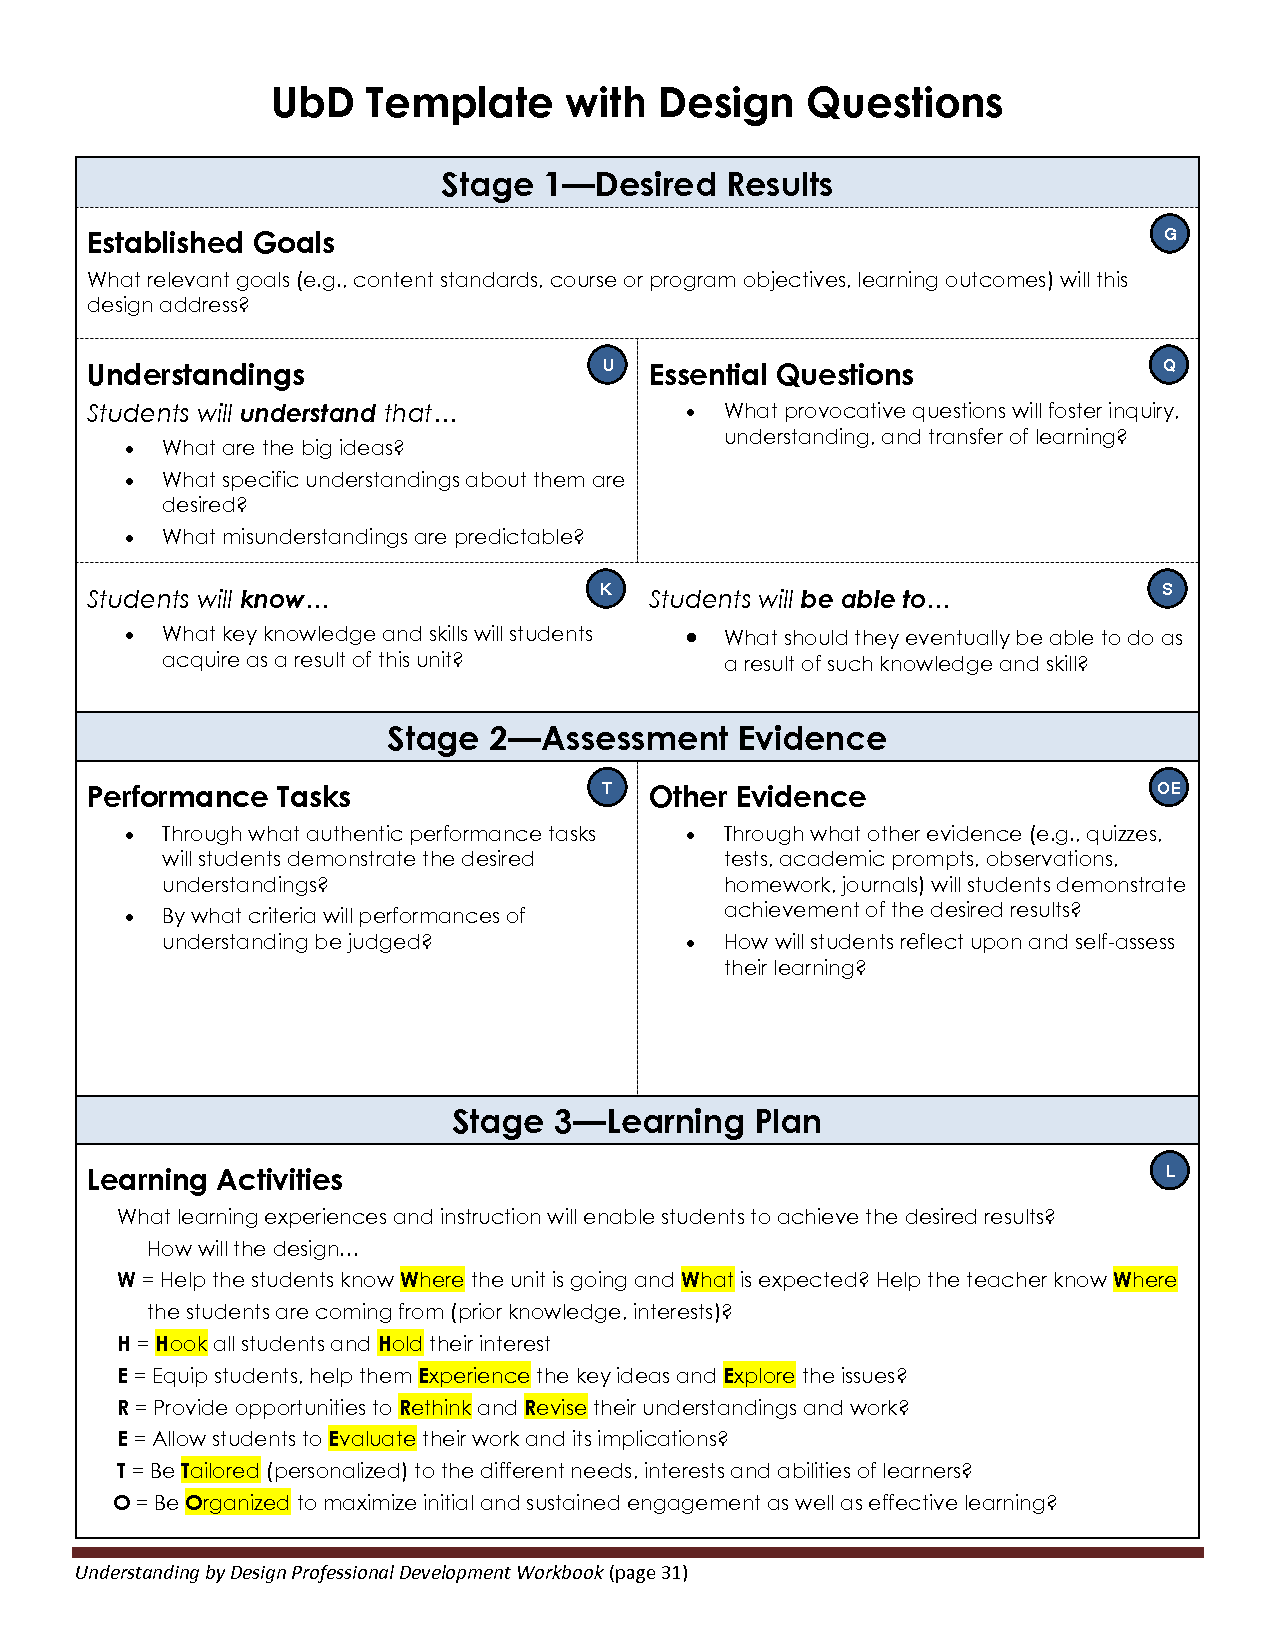 Ubd template with design questions school pinterest - Understanding by design lesson plan template ...